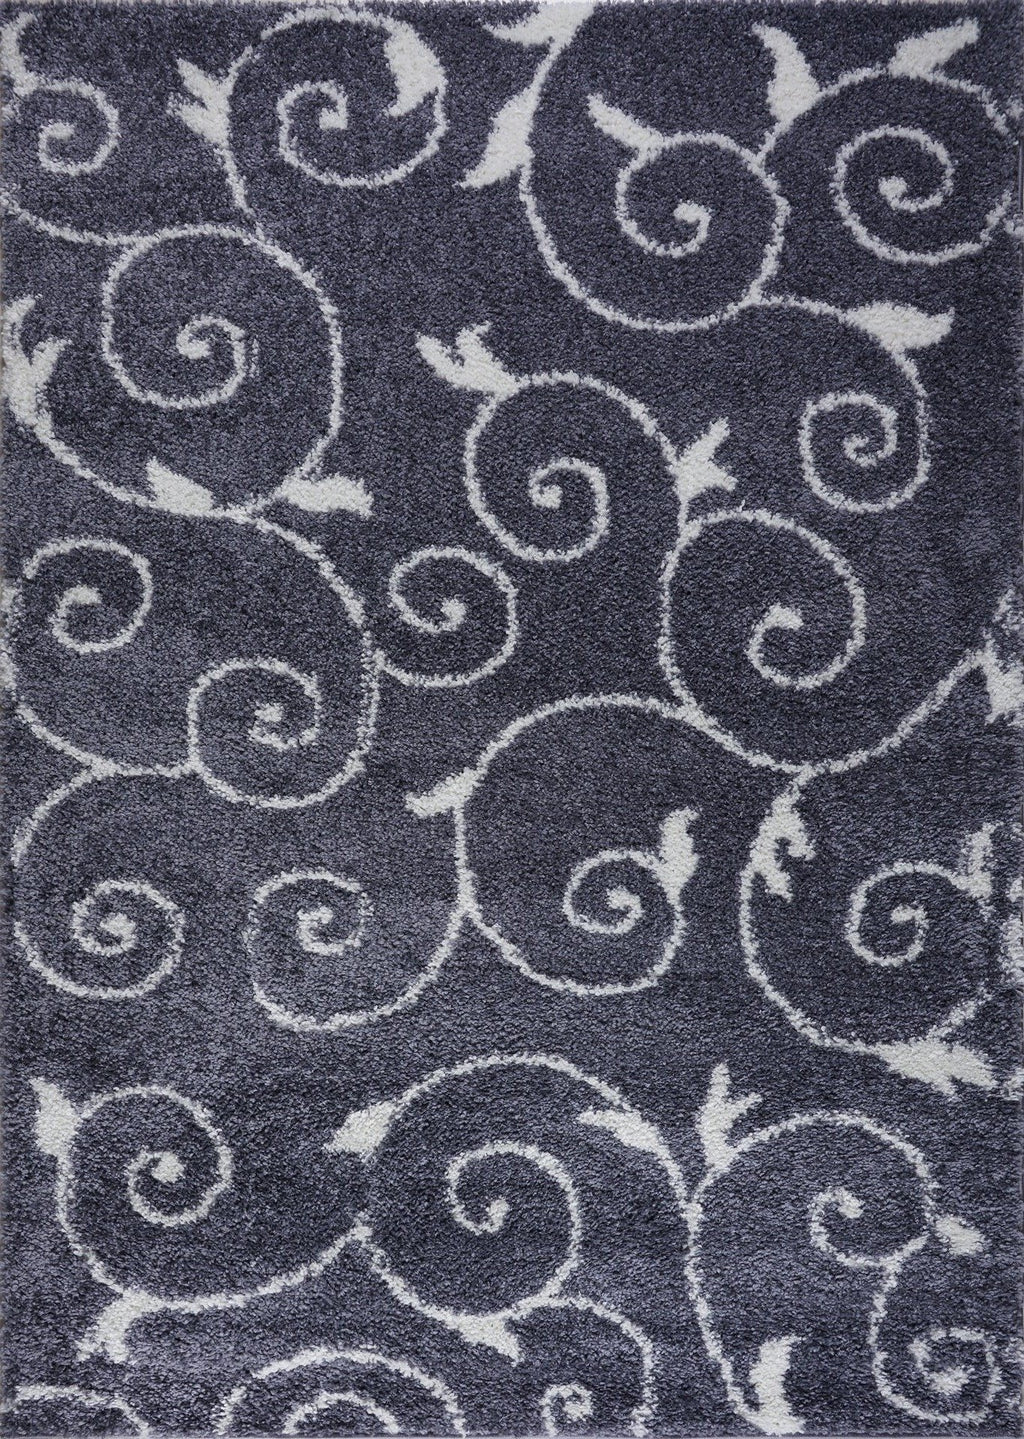 Shaggy Rabat Abstract Pattern Sustainable Spirals Style Indoor Area Rug Carpet, Dark Gray/White